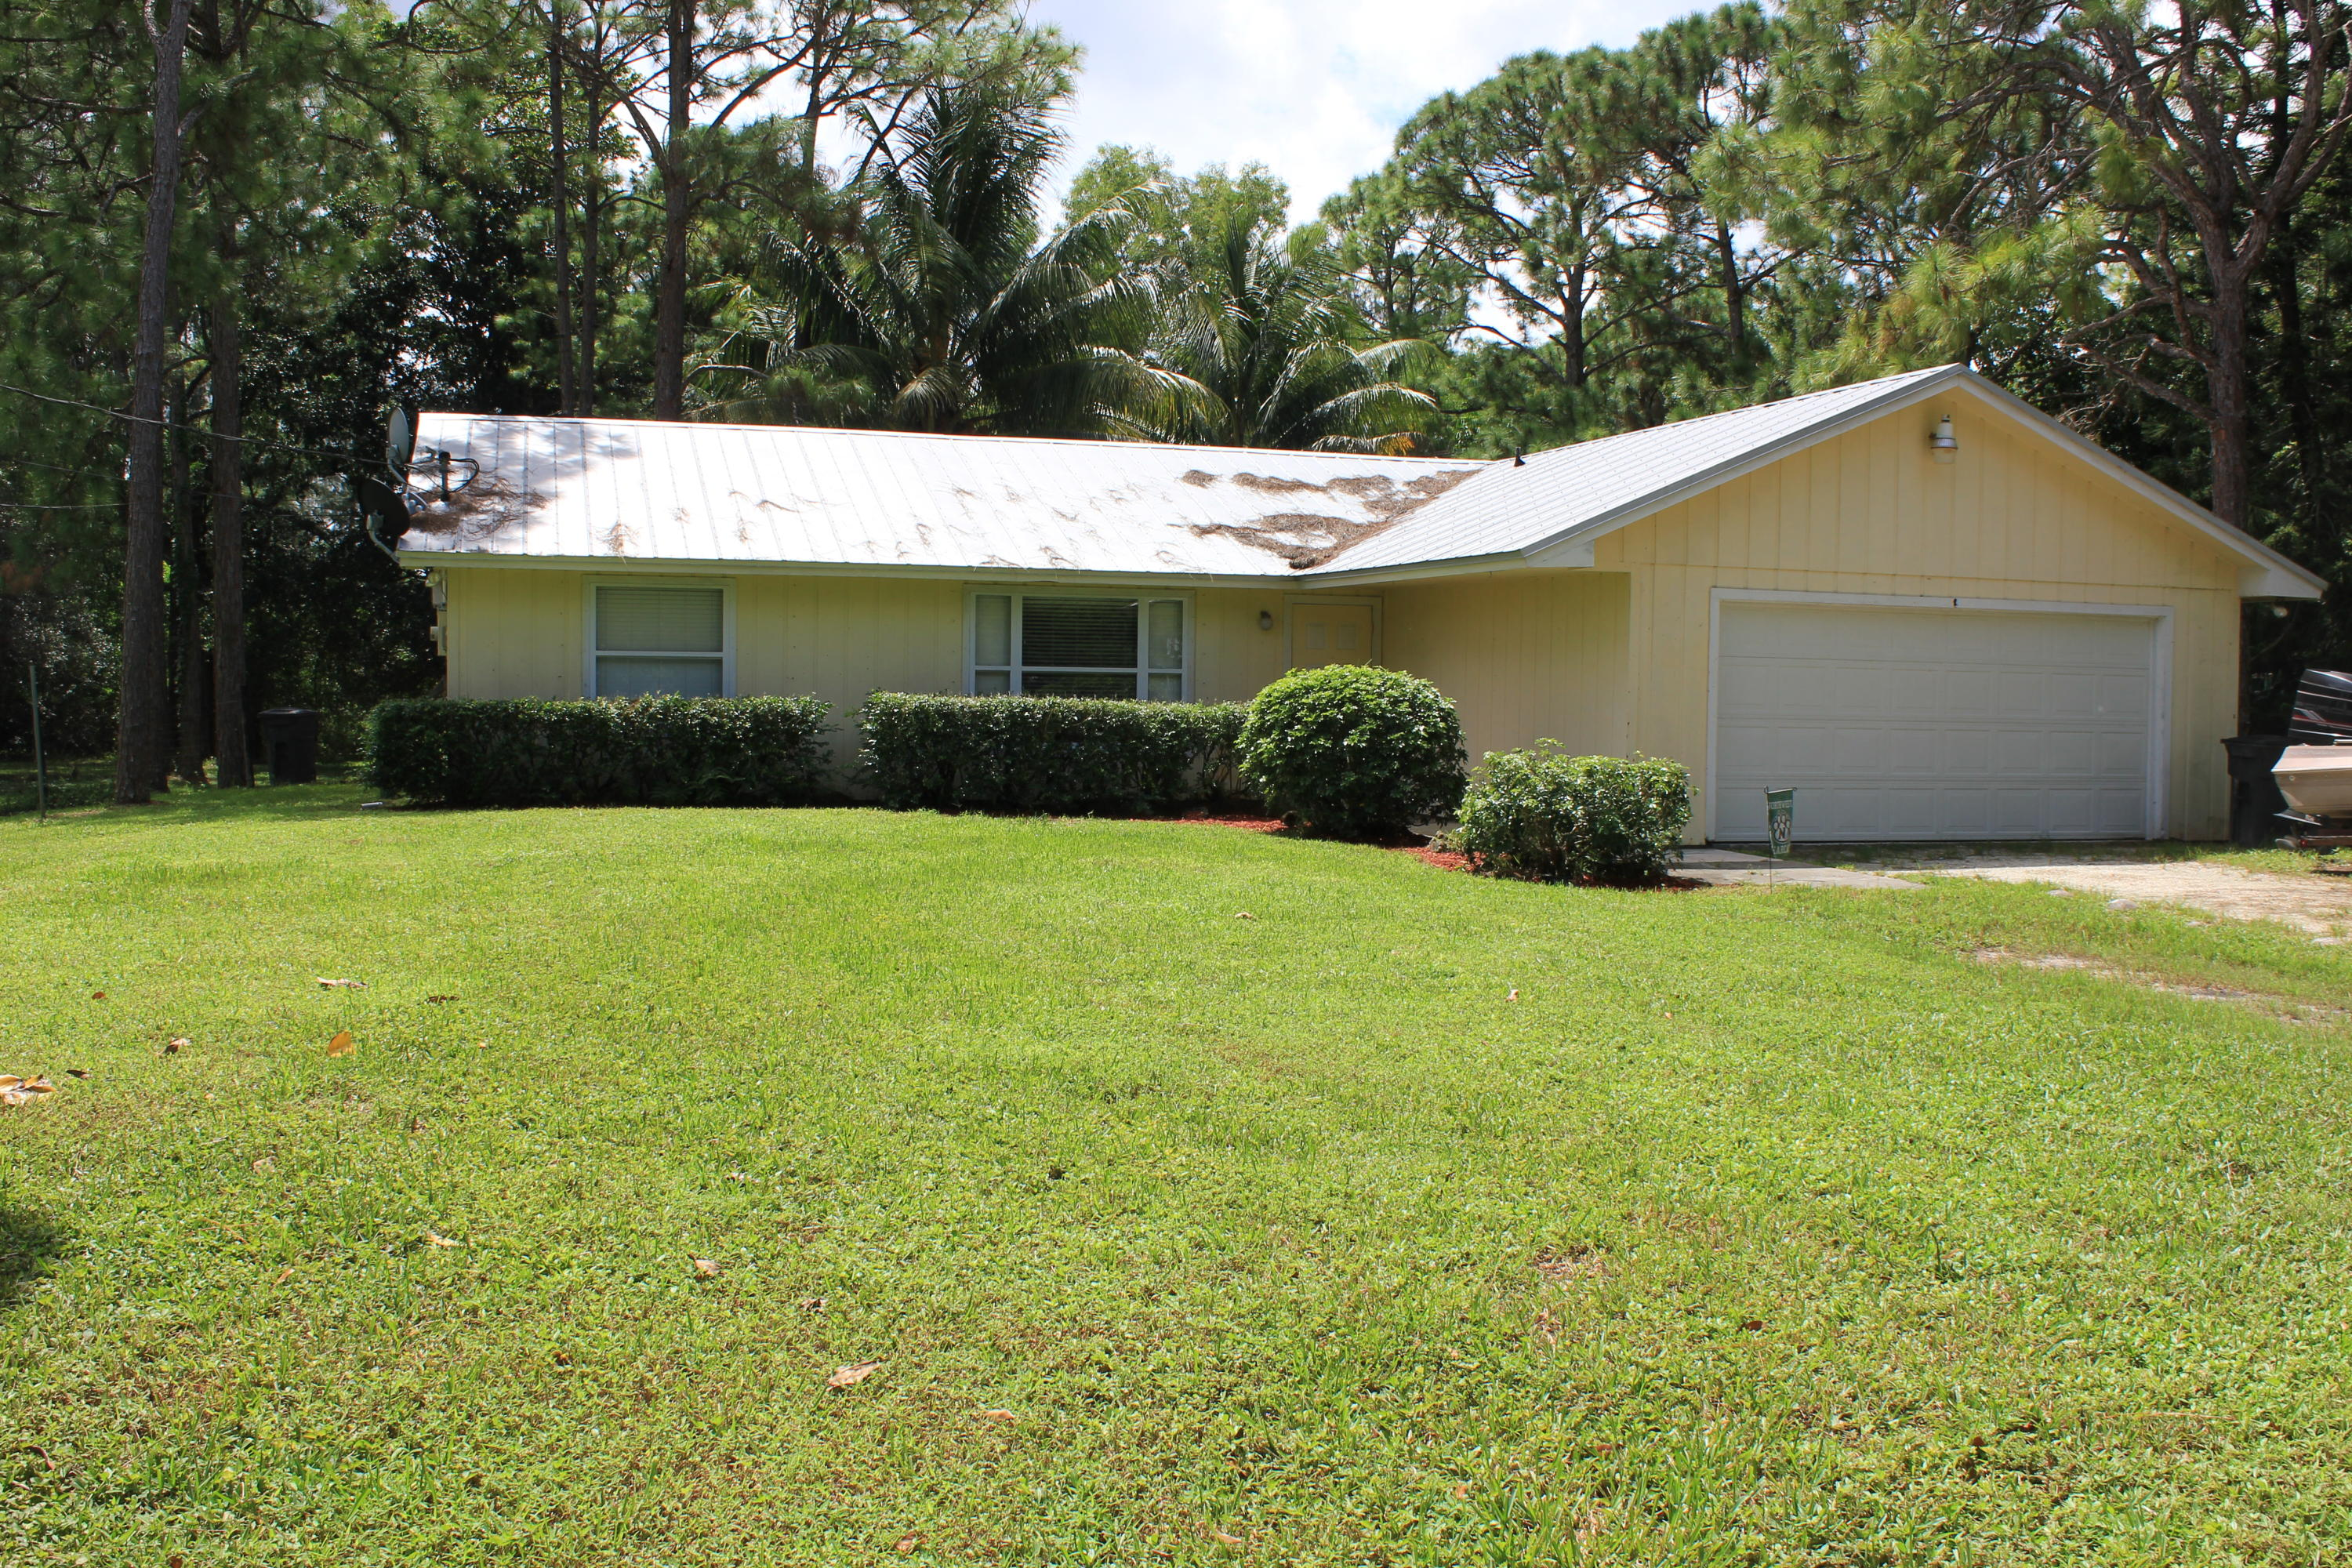 11192 47th Road North, Royal Palm Beach, Florida 33411, 3 Bedrooms Bedrooms, ,2 BathroomsBathrooms,Single Family,For Sale,The Acreage,47th Road North,RX-10463946